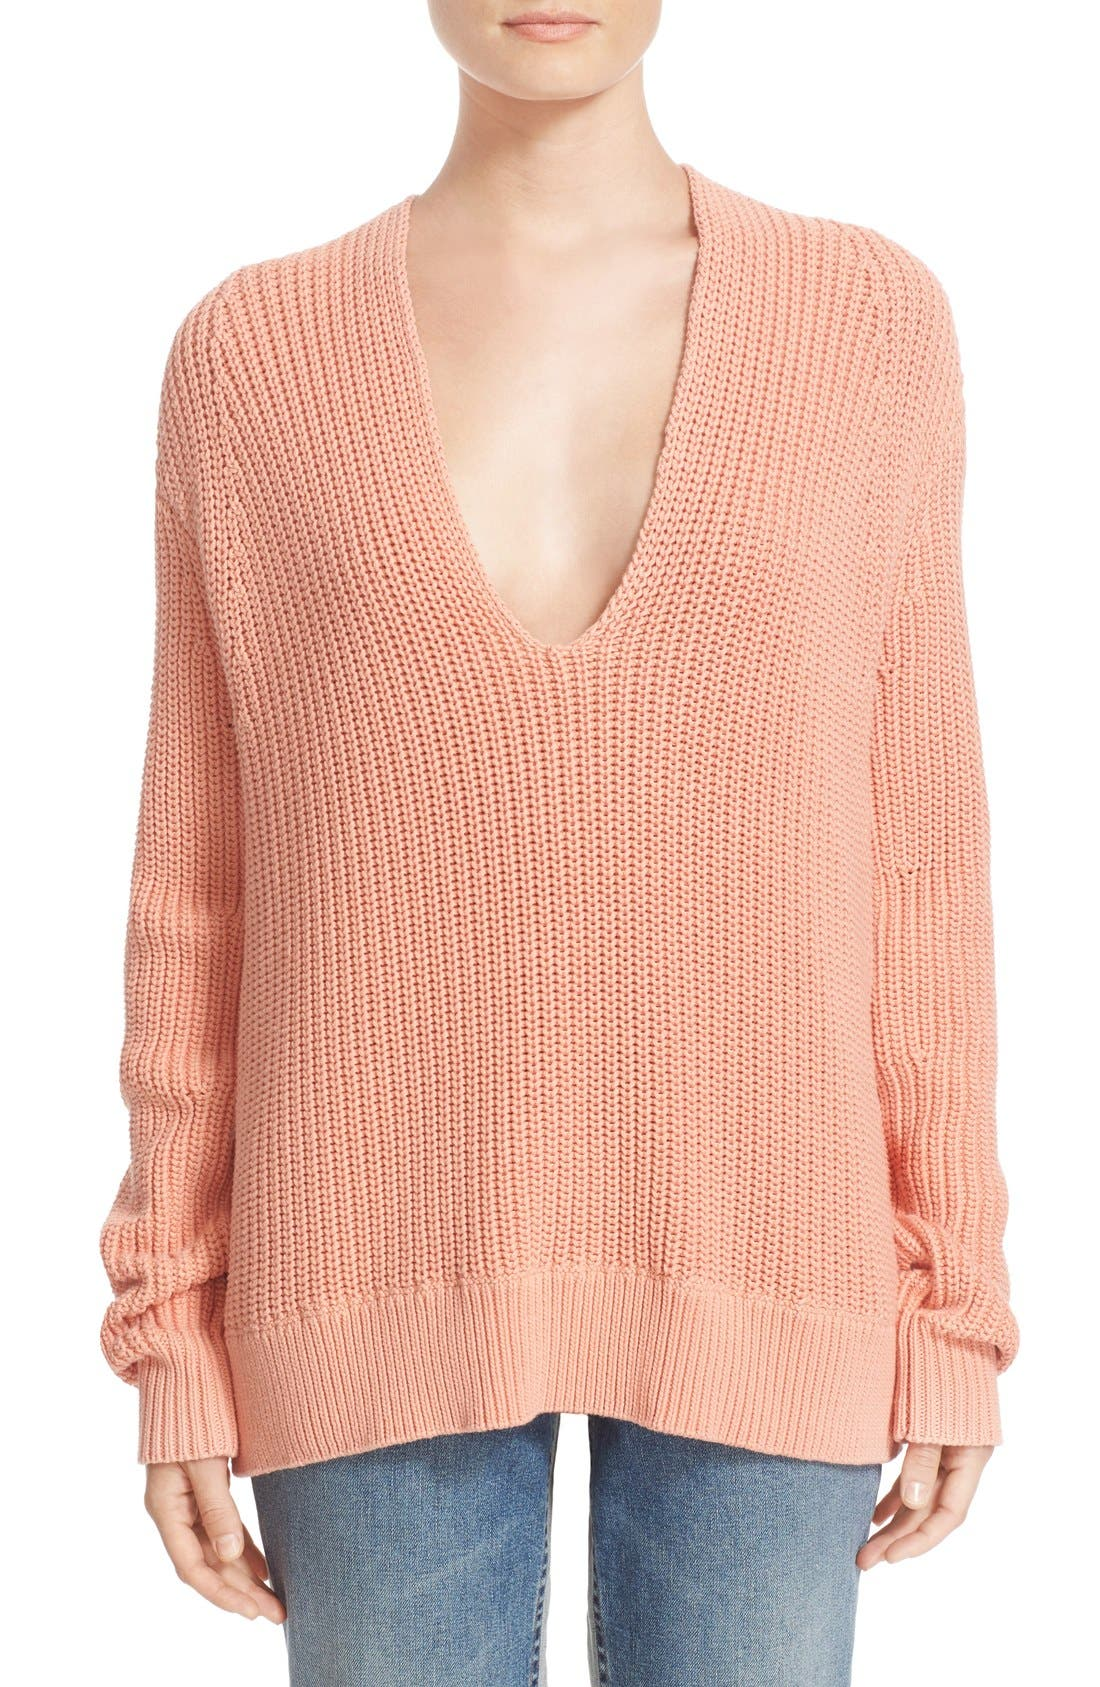 Alternate Image 1 Selected - T by Alexander Wang Knit Cotton Sweater